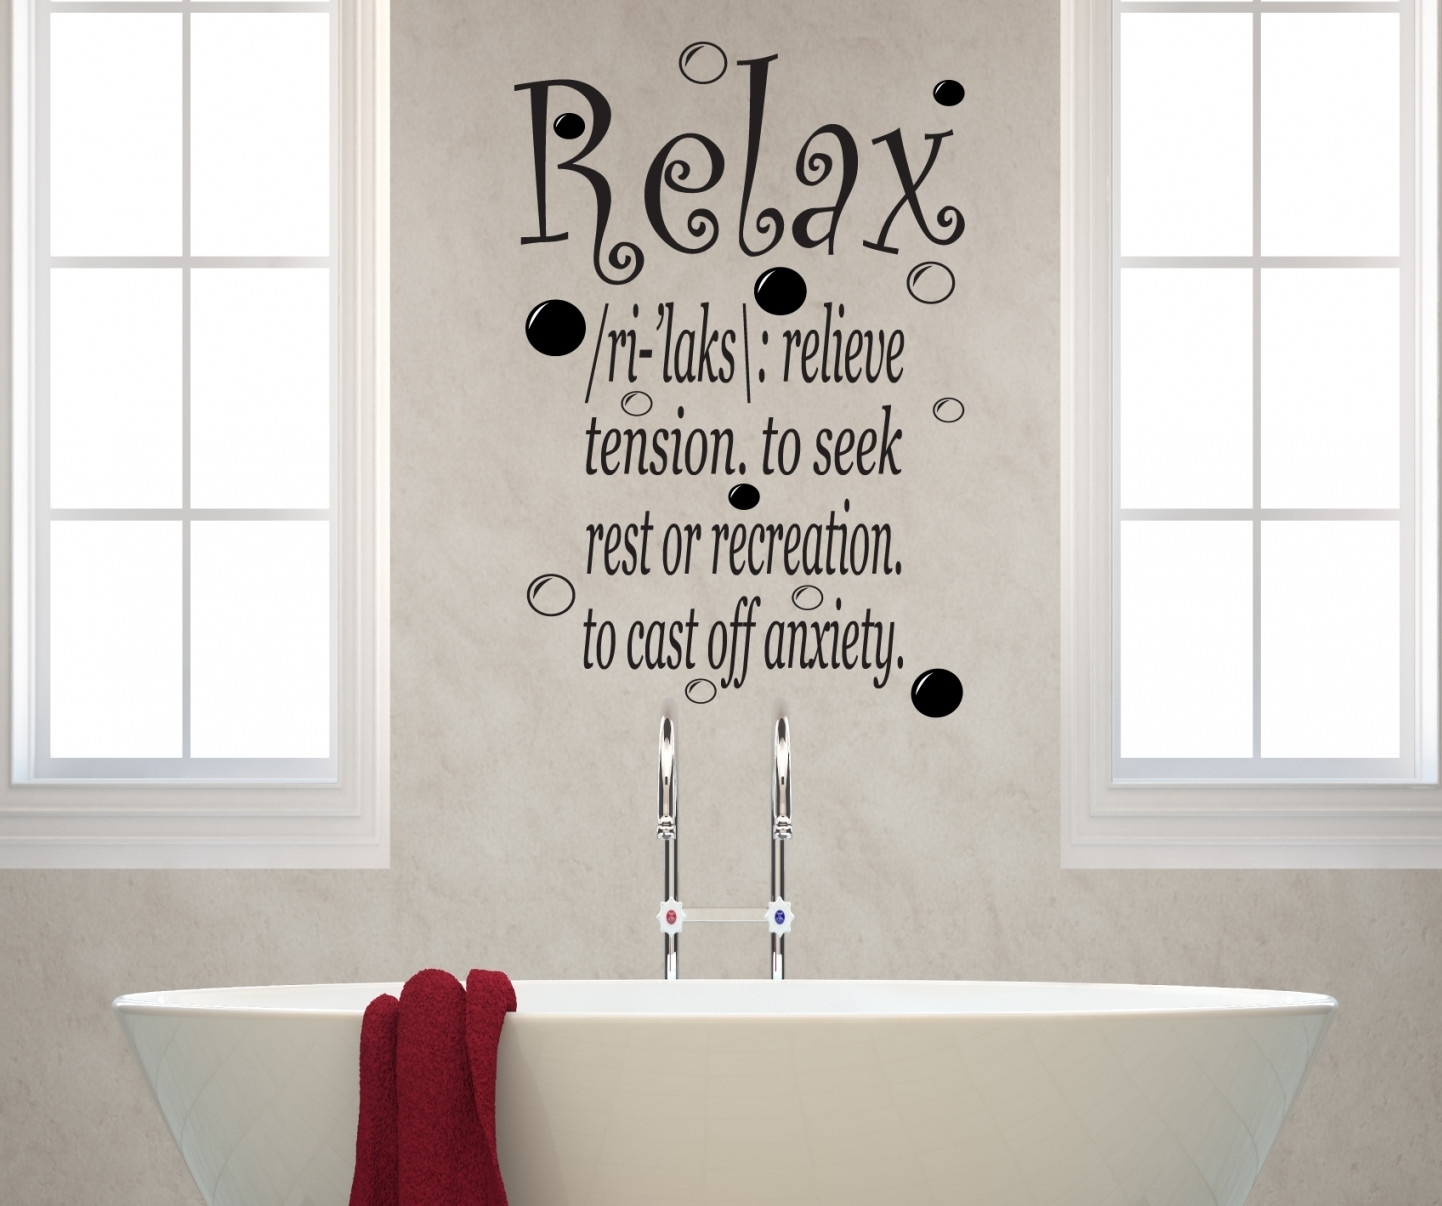 Luxury Relax Wall Art Images – Hypermallapartments In Recent Relax Wall Art (Gallery 6 of 20)